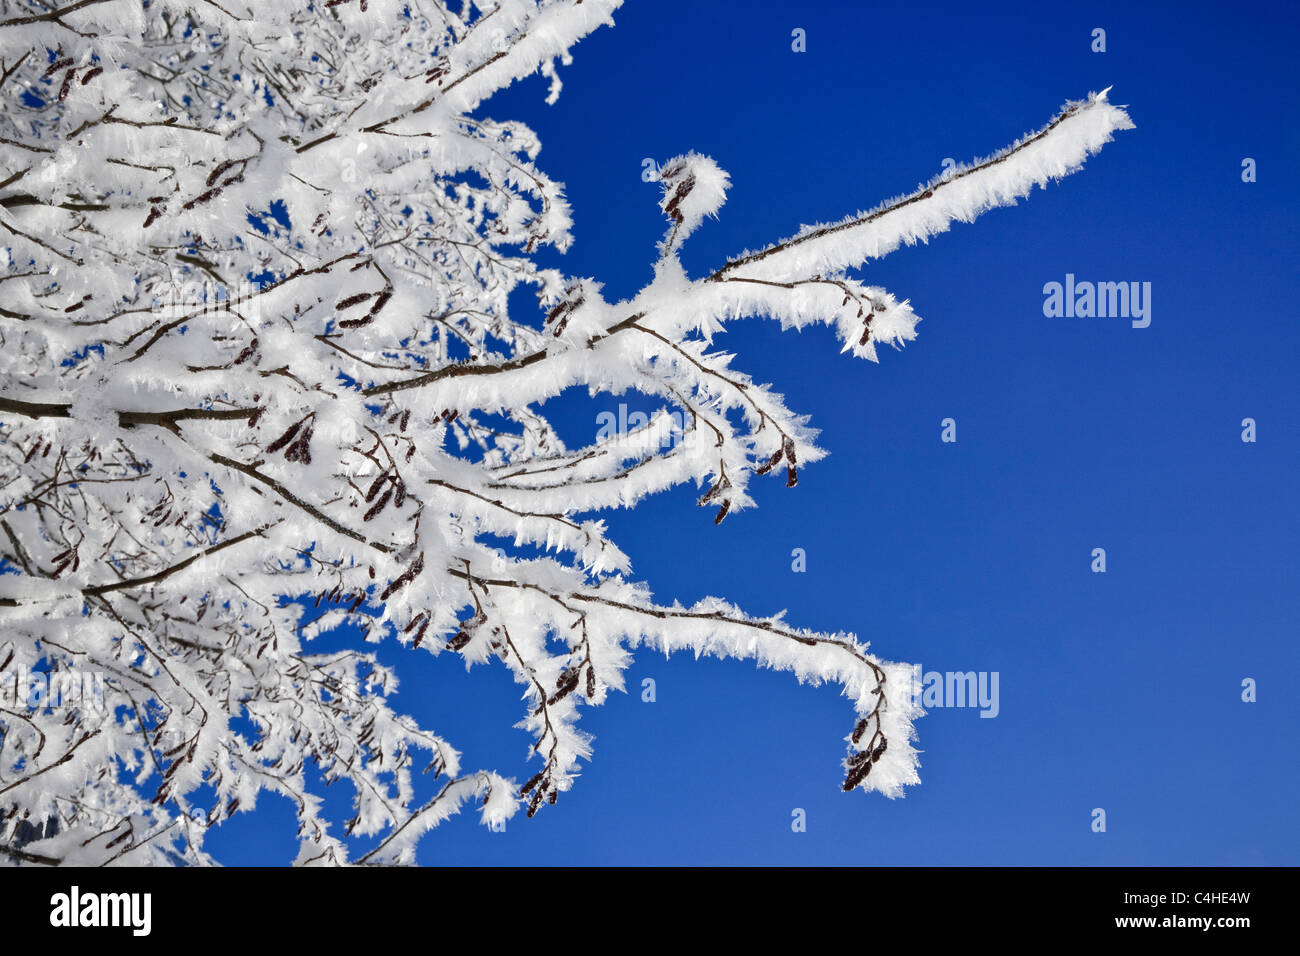 White hoarfrost on the branches of a Hazel tree against a clear blue sky in cold winter weather. Austria, Europe. - Stock Image